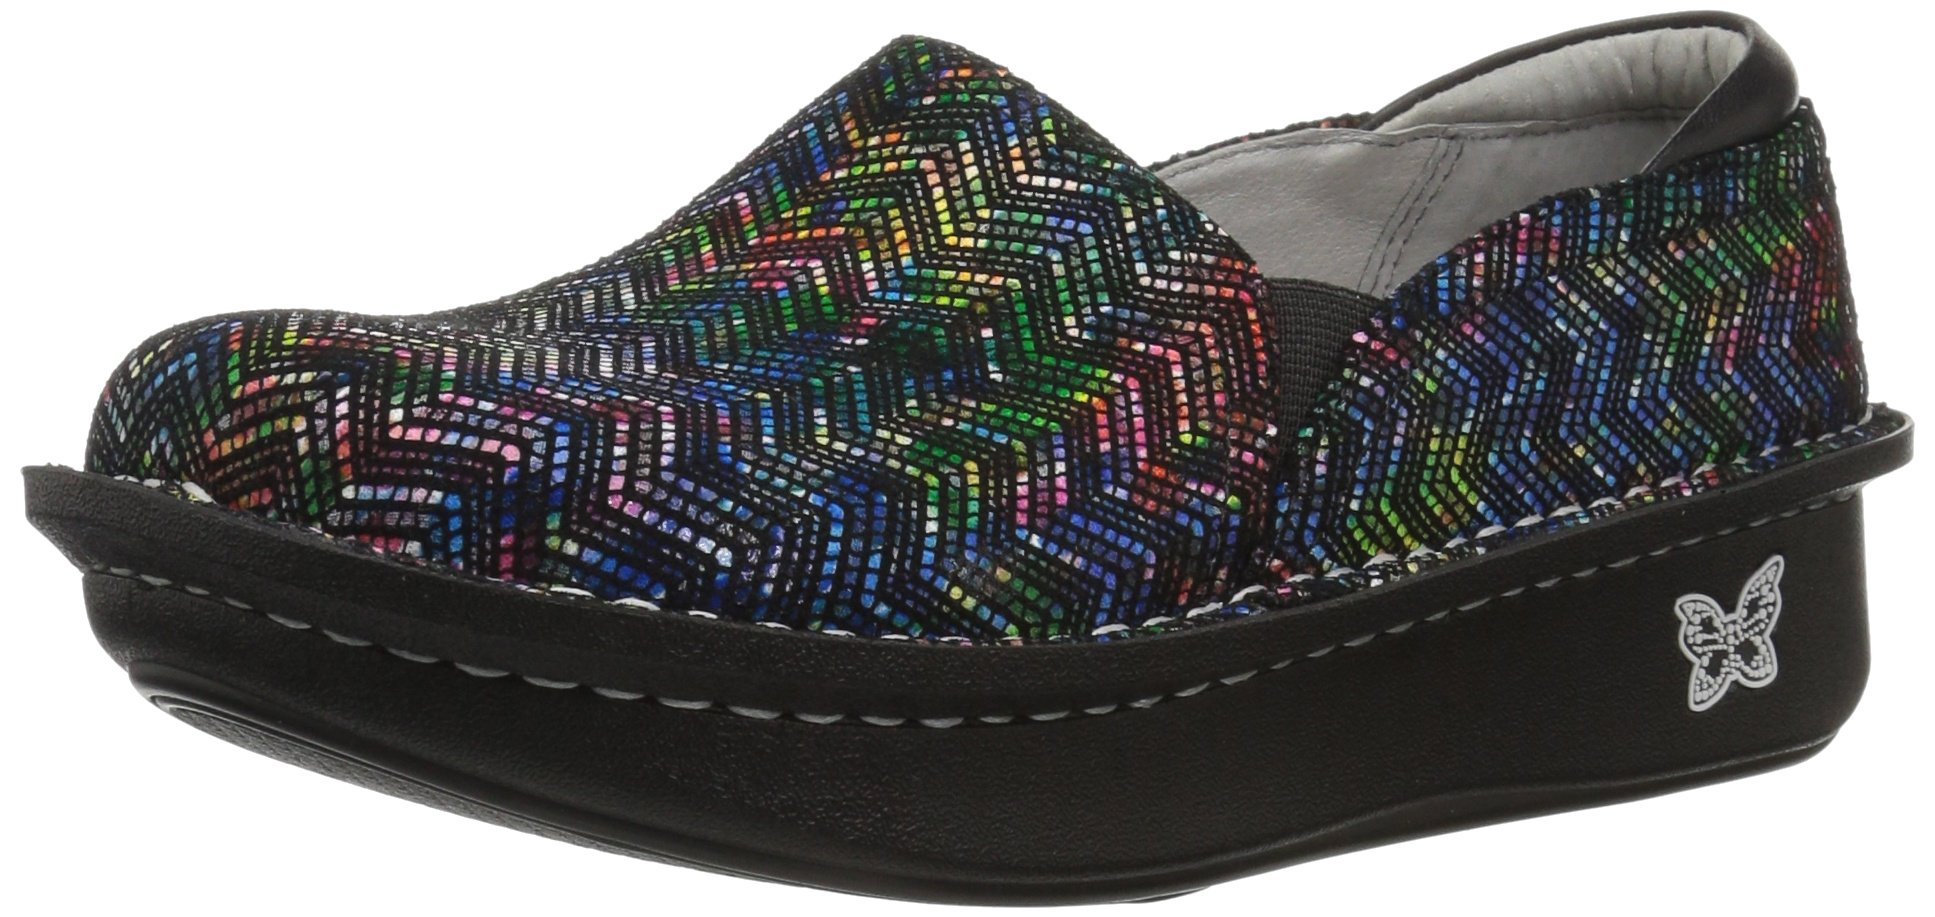 Alegria Women's Debra Loafer, Ric Rack Rainbow, 38W Wide EU (8-8.5 US) by Alegria